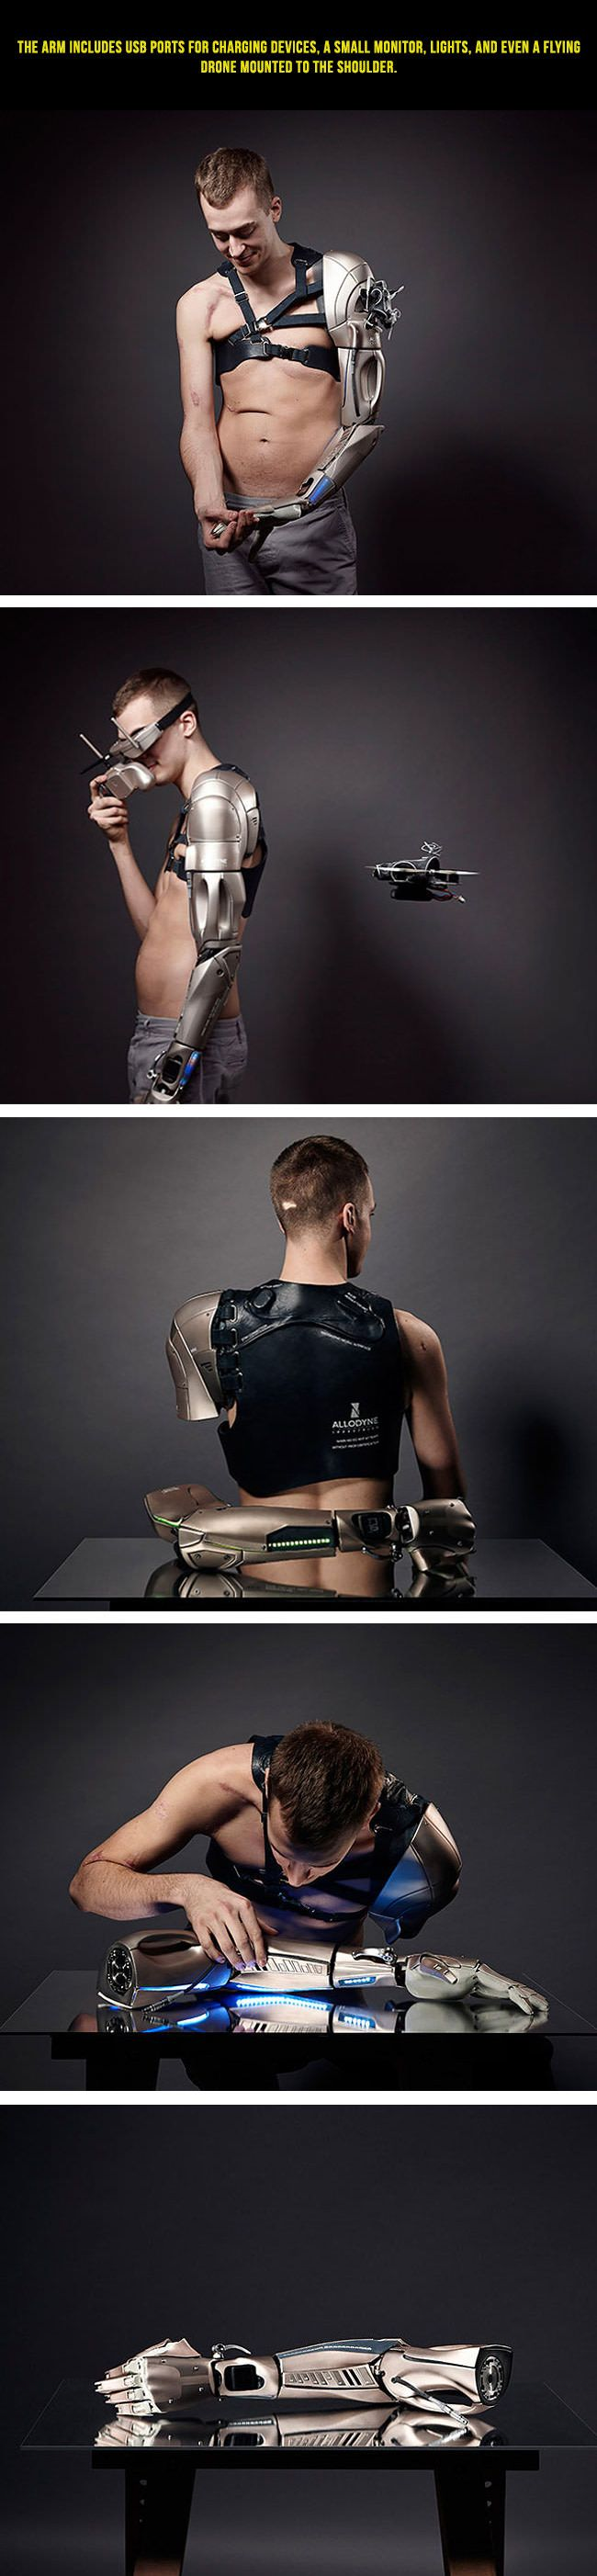 Amputee Gamer Gets Metal Gear Solid Inspired Prosthetic Arm